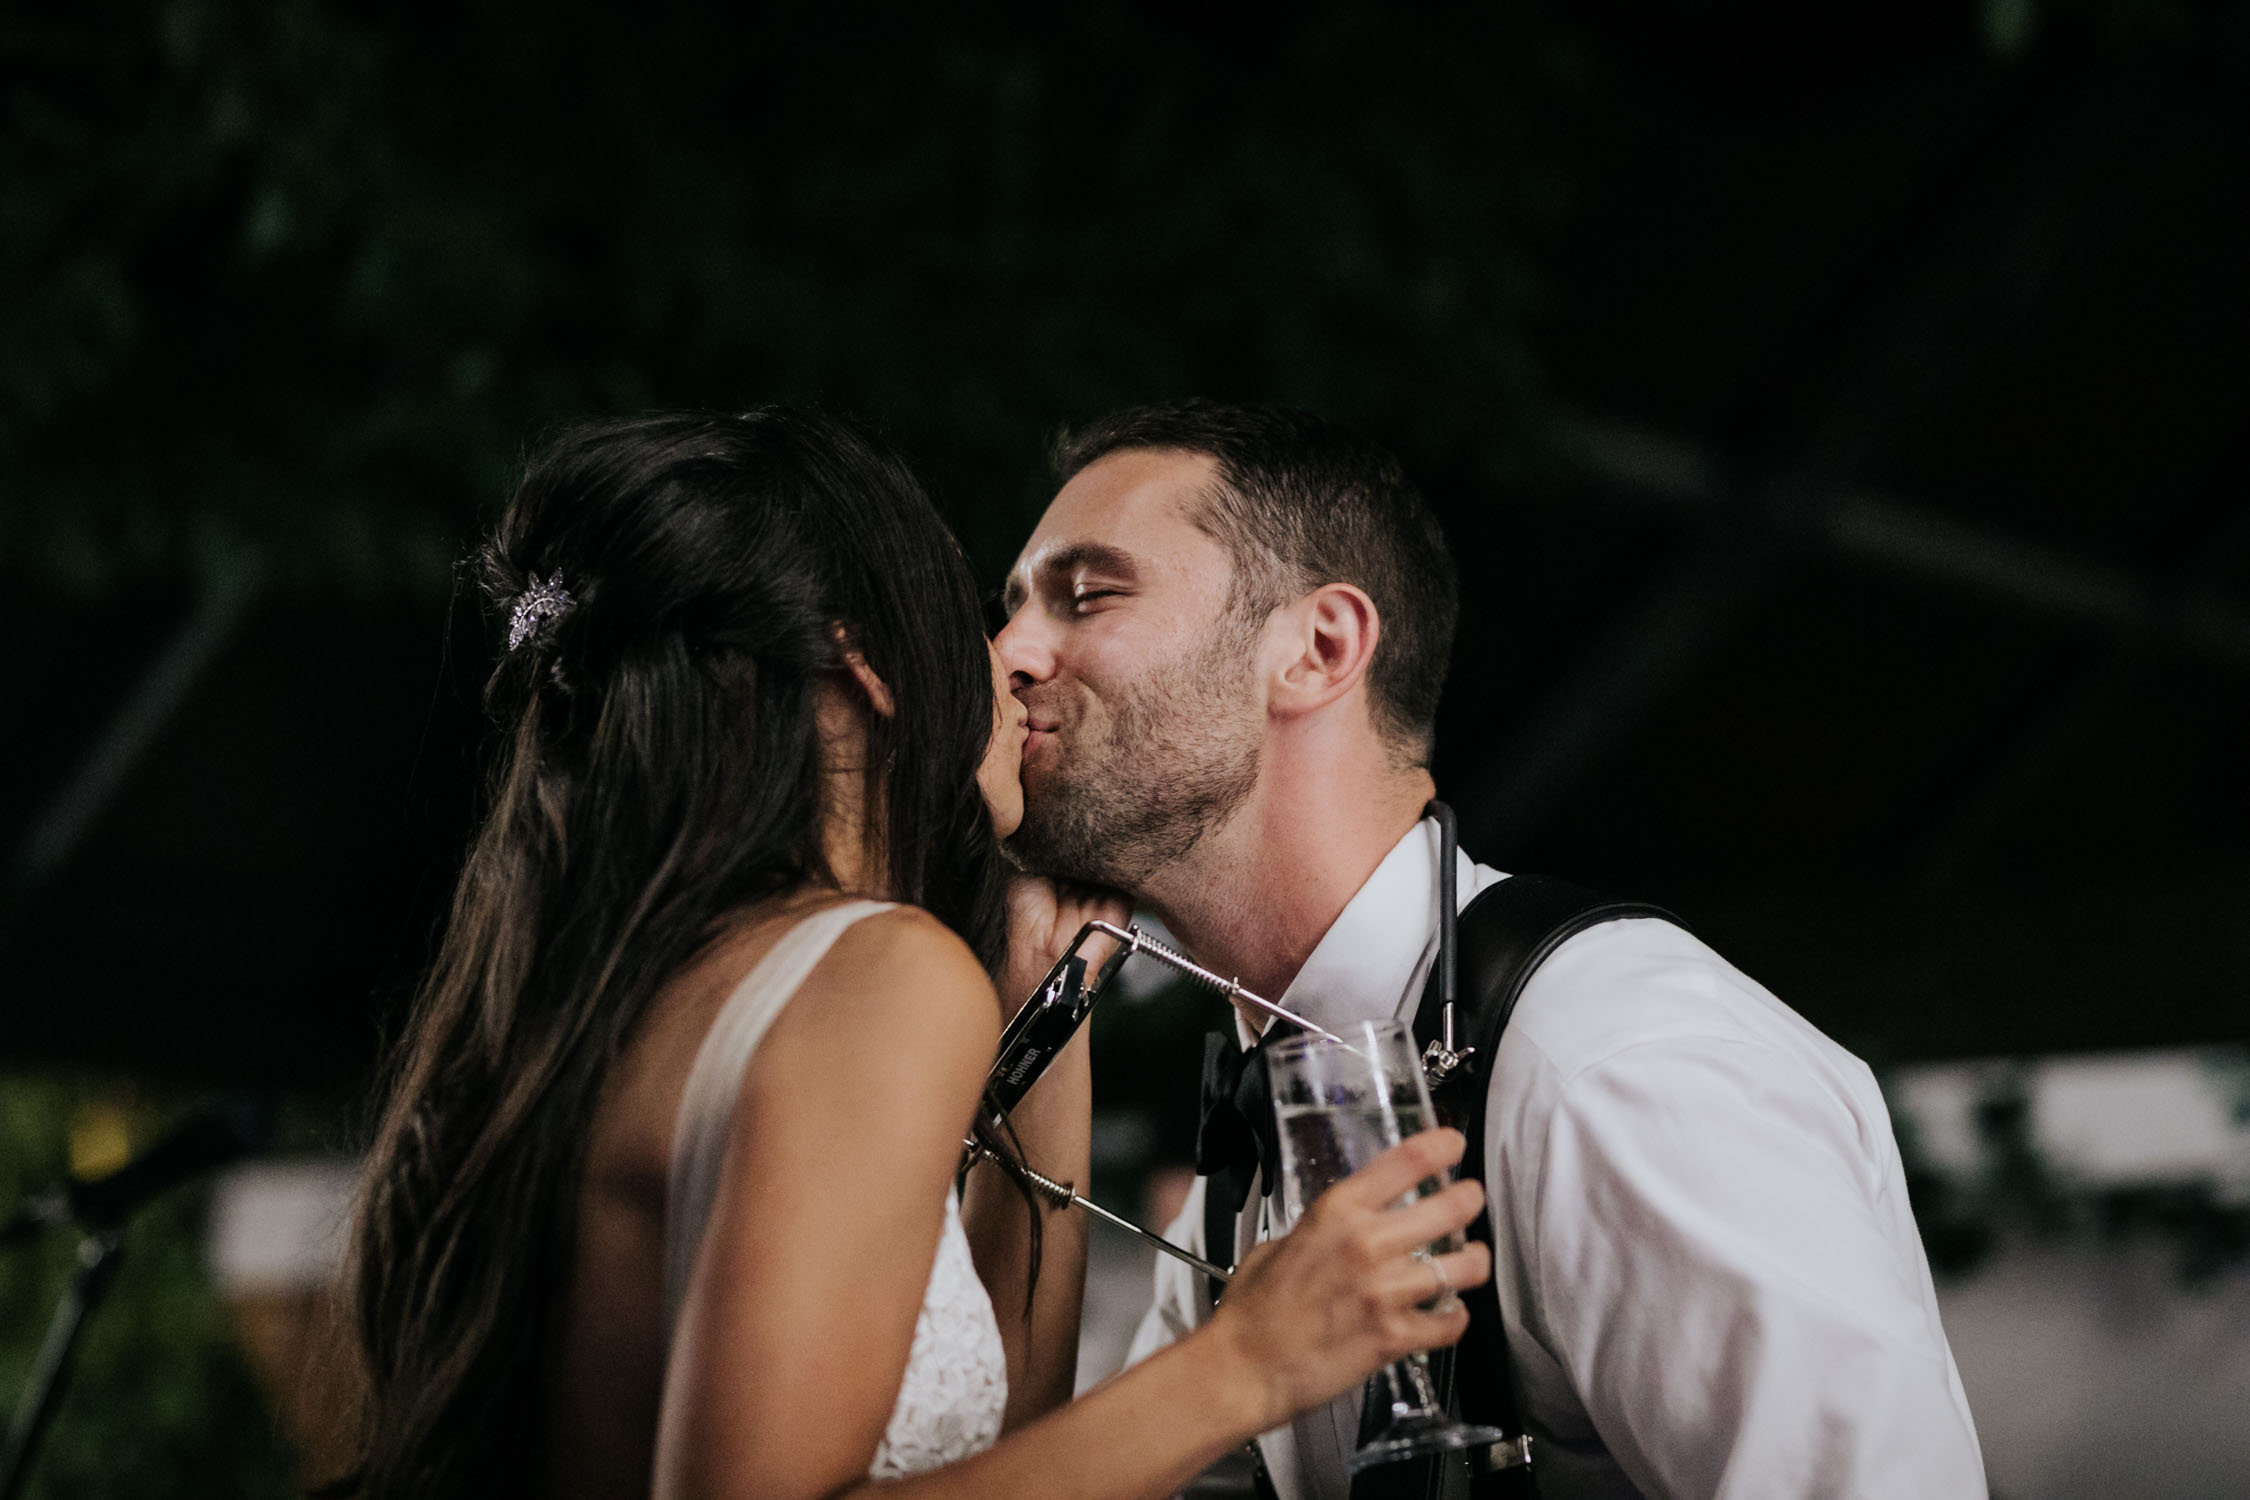 Romantic surprise as groom sings a song he wrote to his bride and does an acoustic folk music performance with guitar and harmonica Madsen's Greenhouse wedding venue in Newmarket close to Toronto